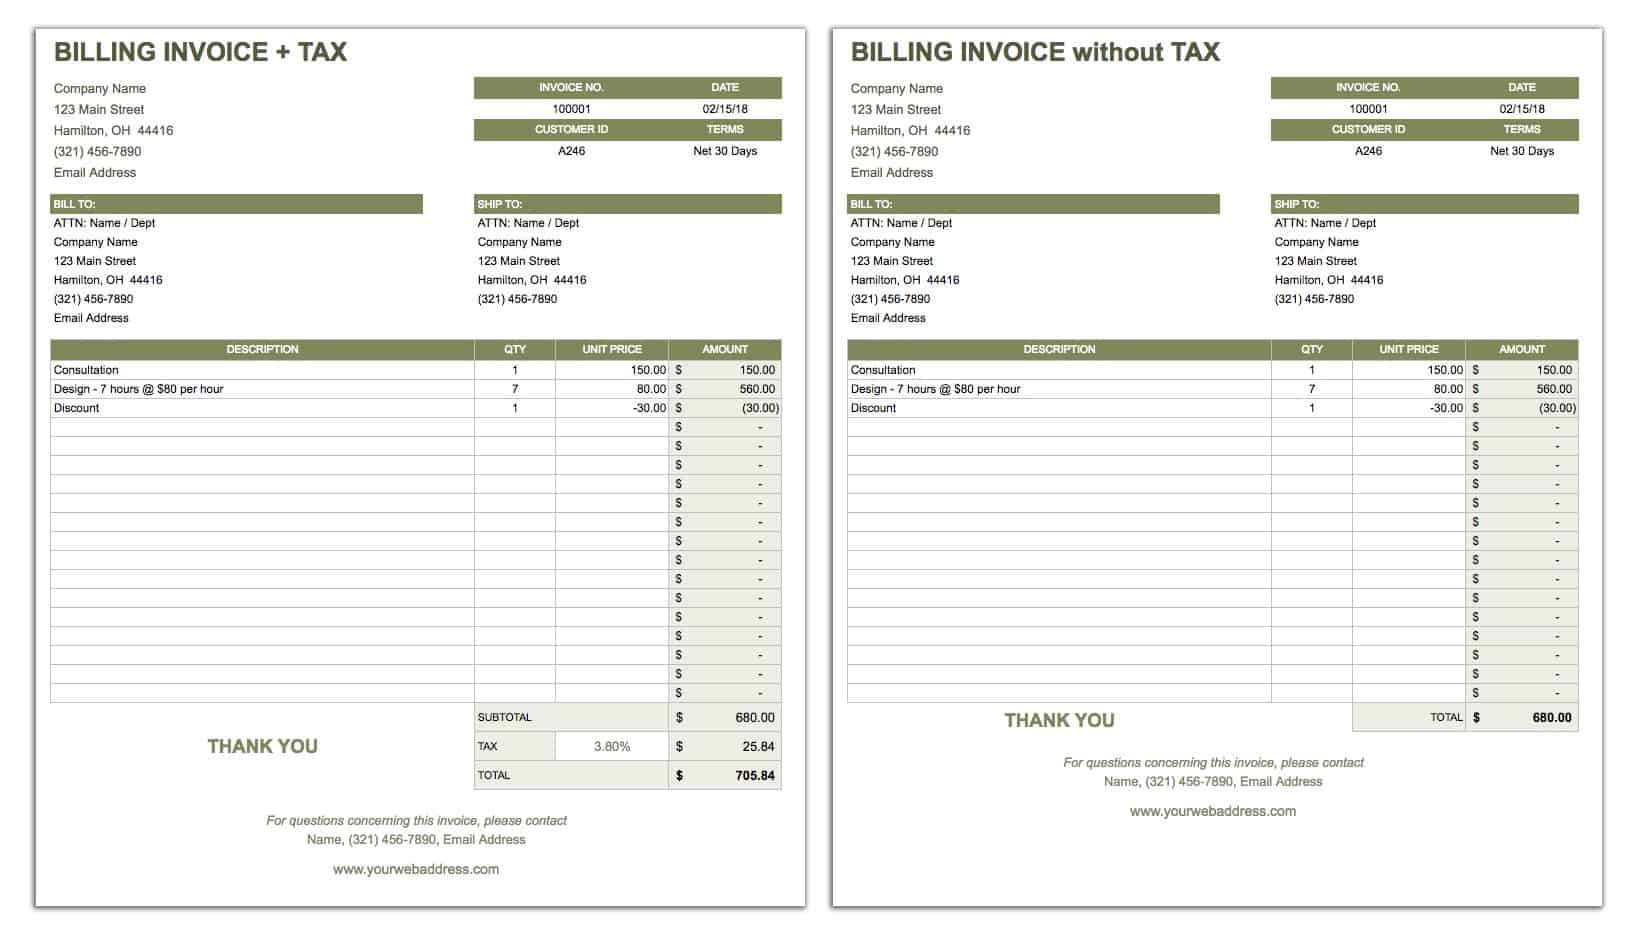 Billing Invoice Template - Google Sheets